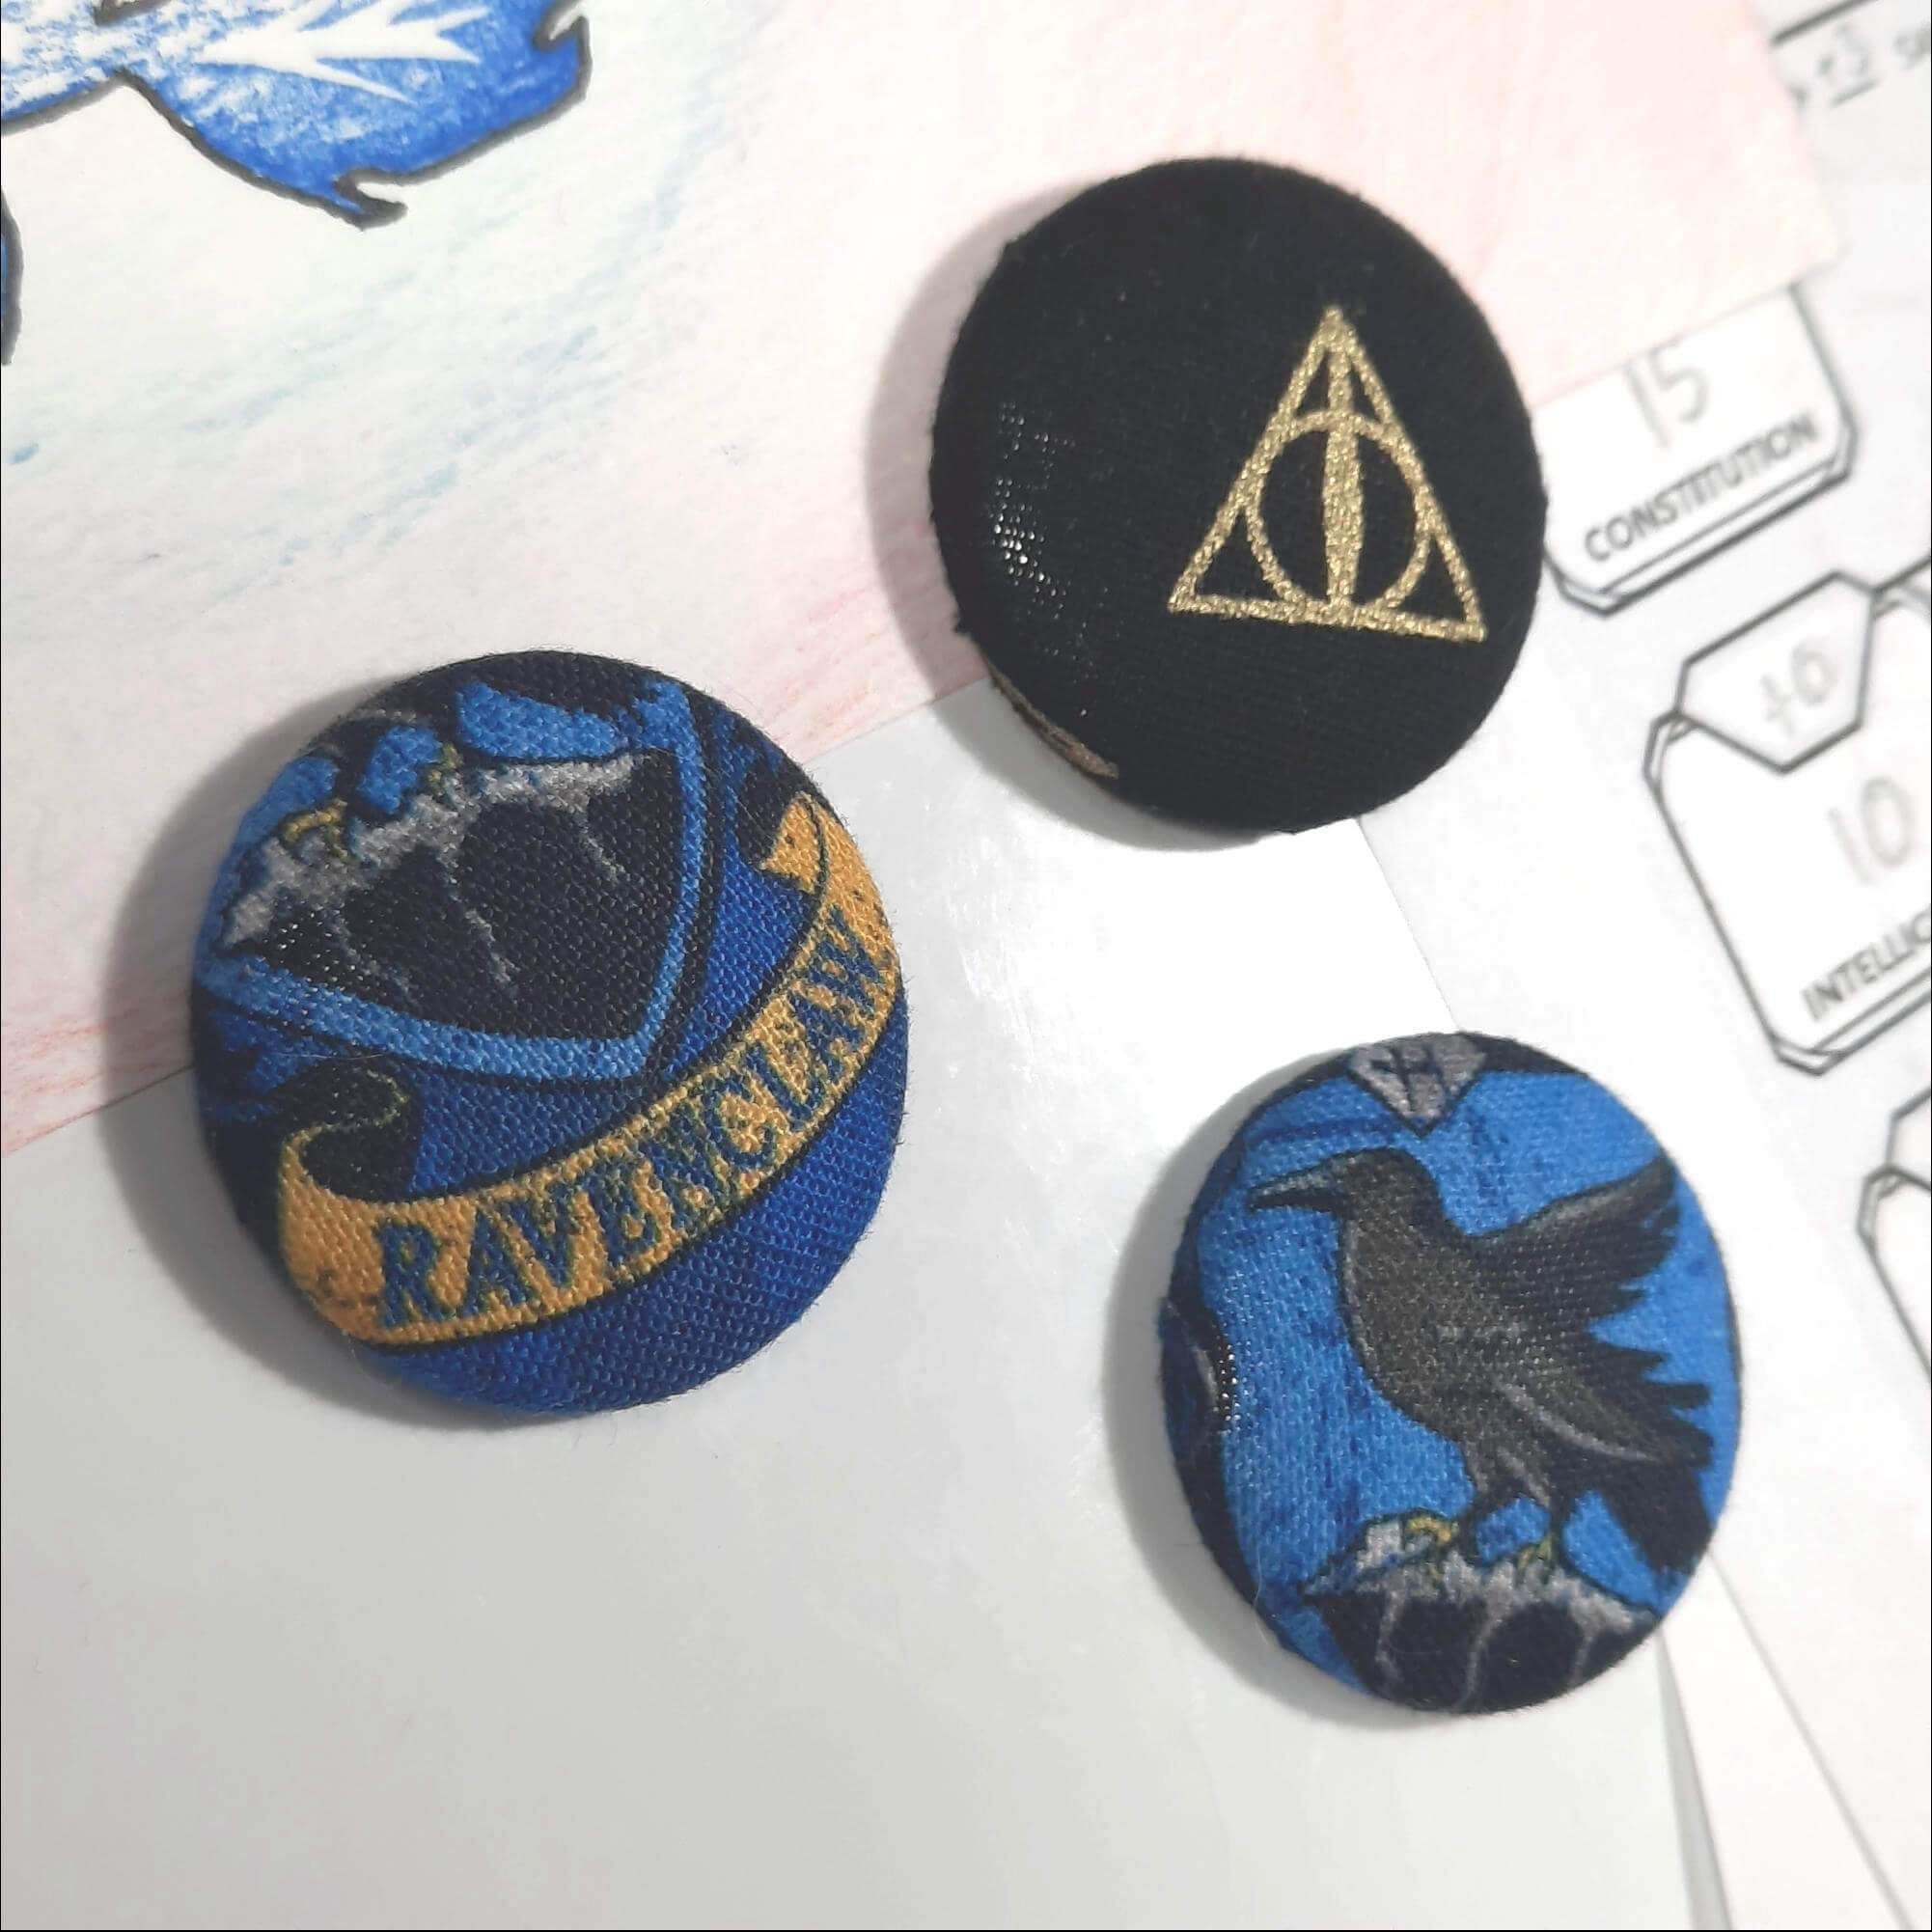 Ravenclaw House Magnets Made From Harry Potter Fabric